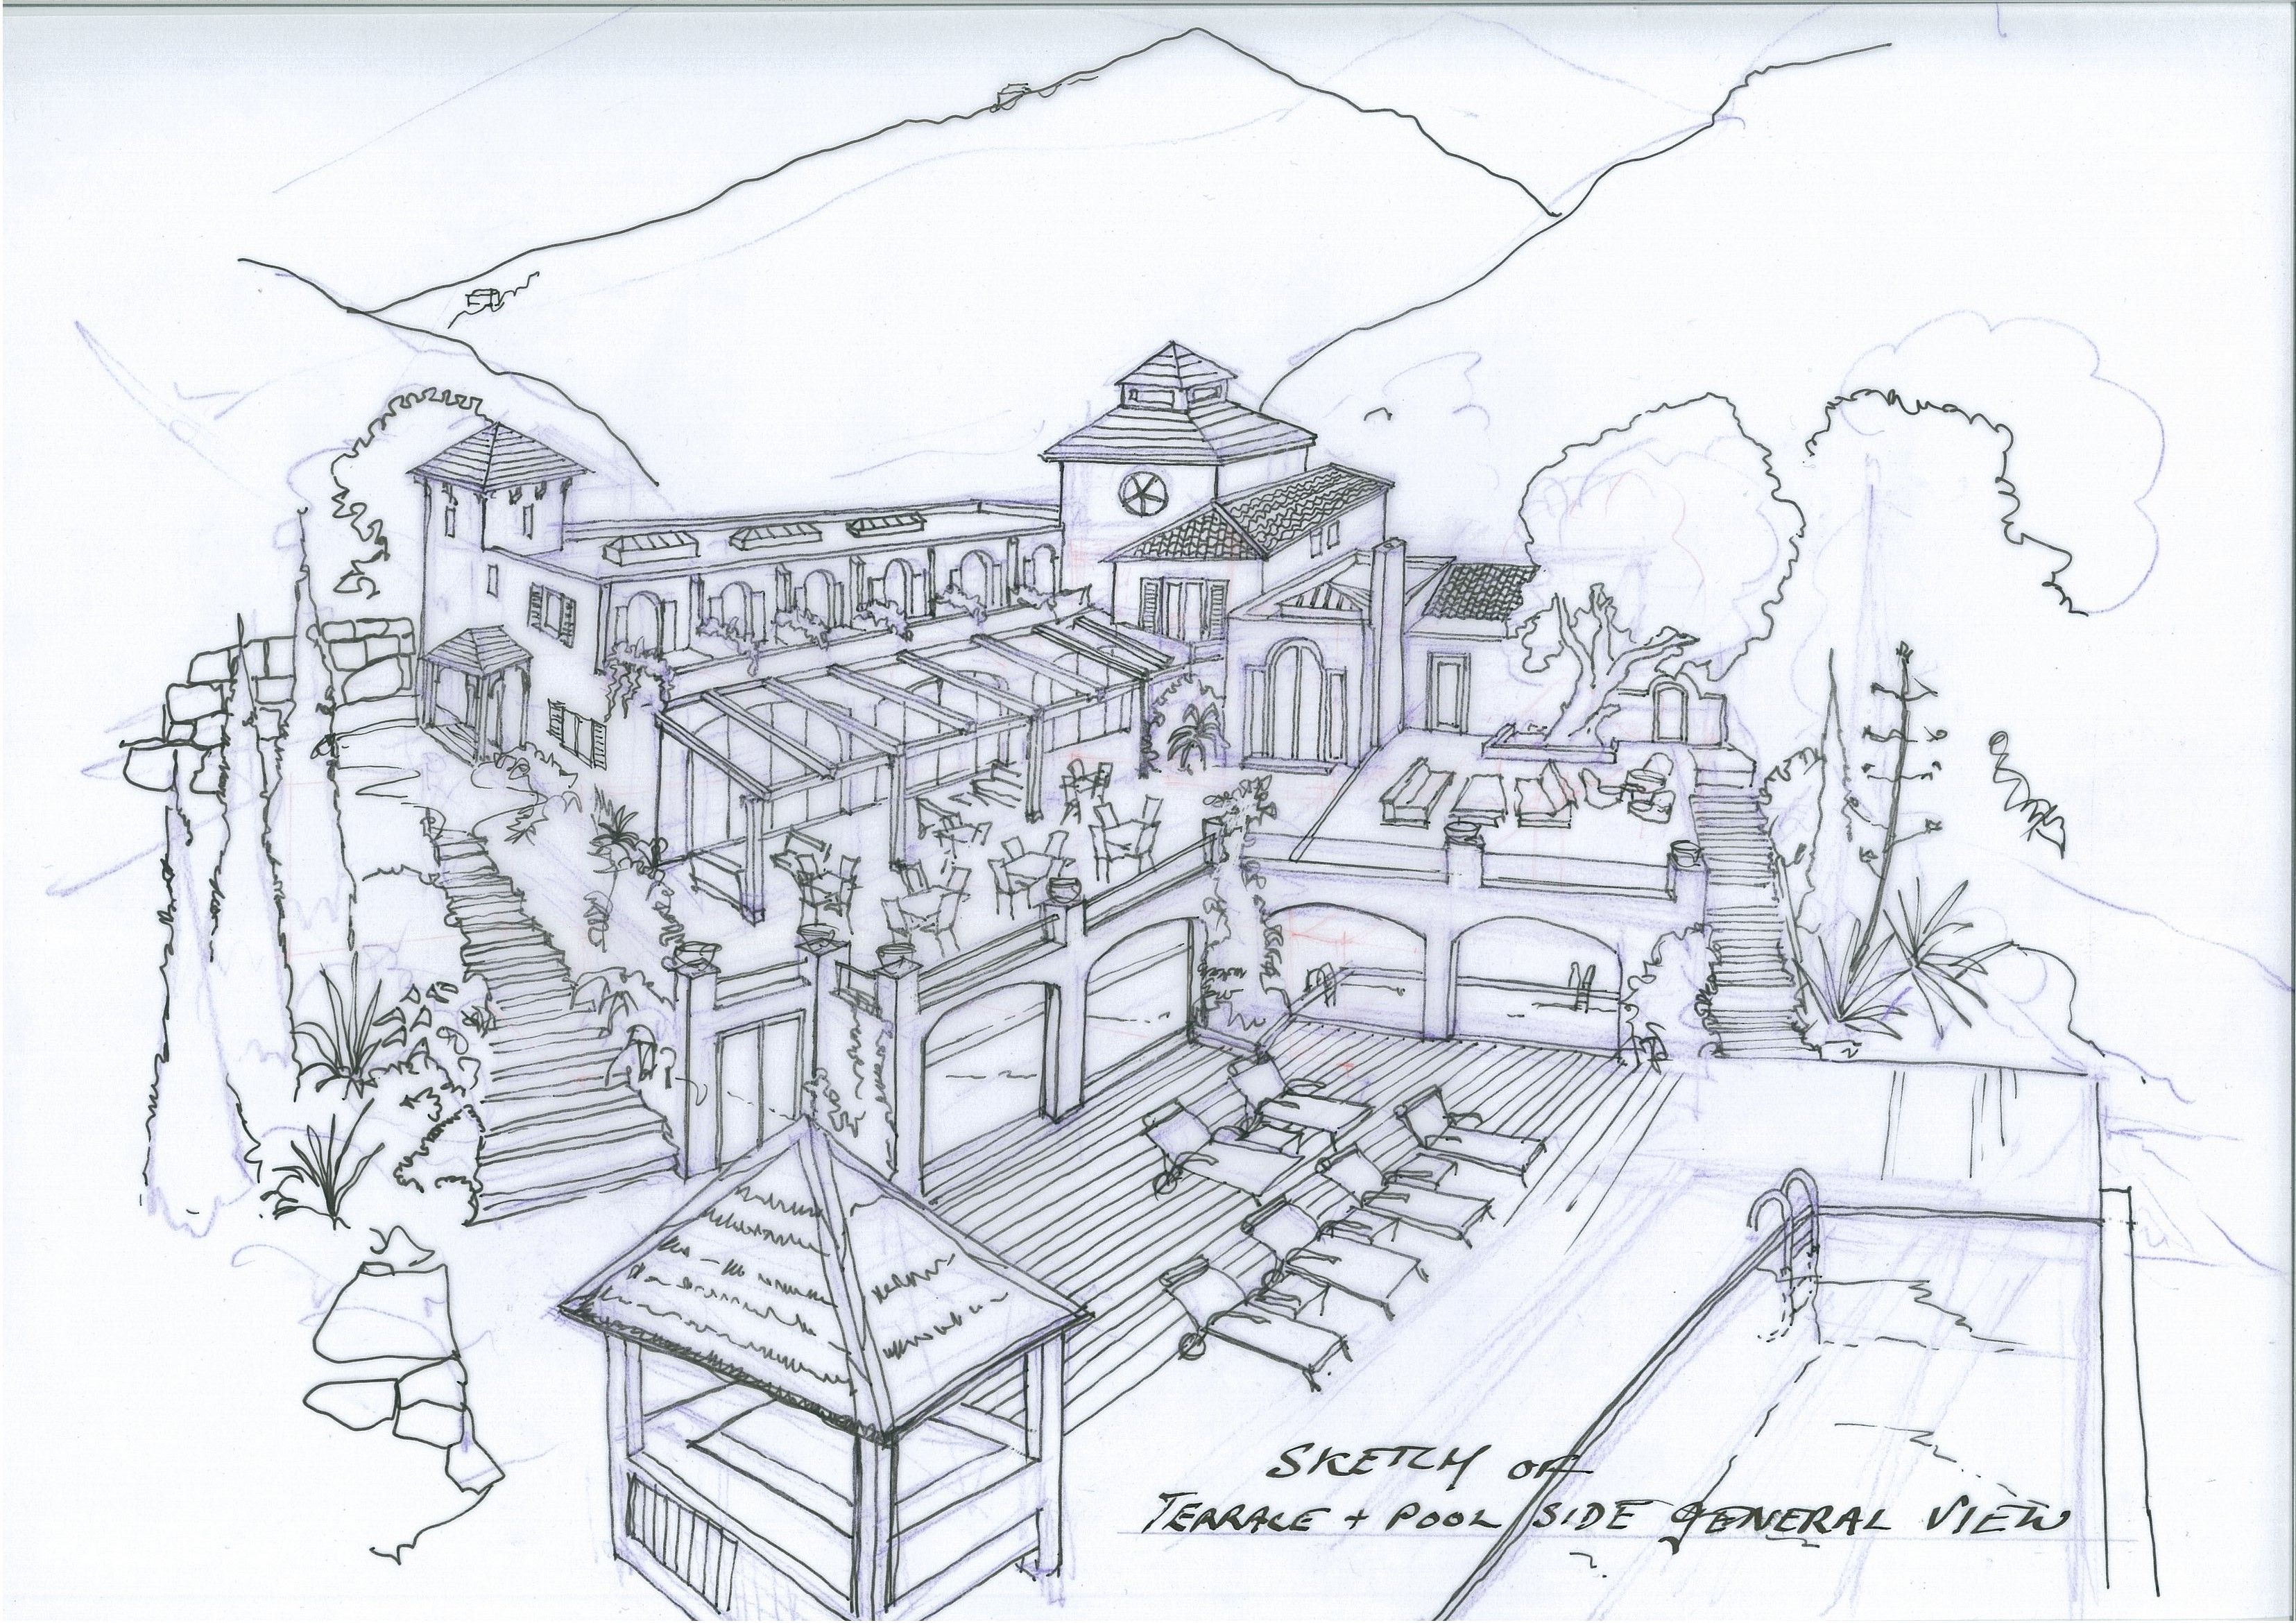 Hotel Hacienda Del Agua Divino (Gaucin, Spain) Sketch of